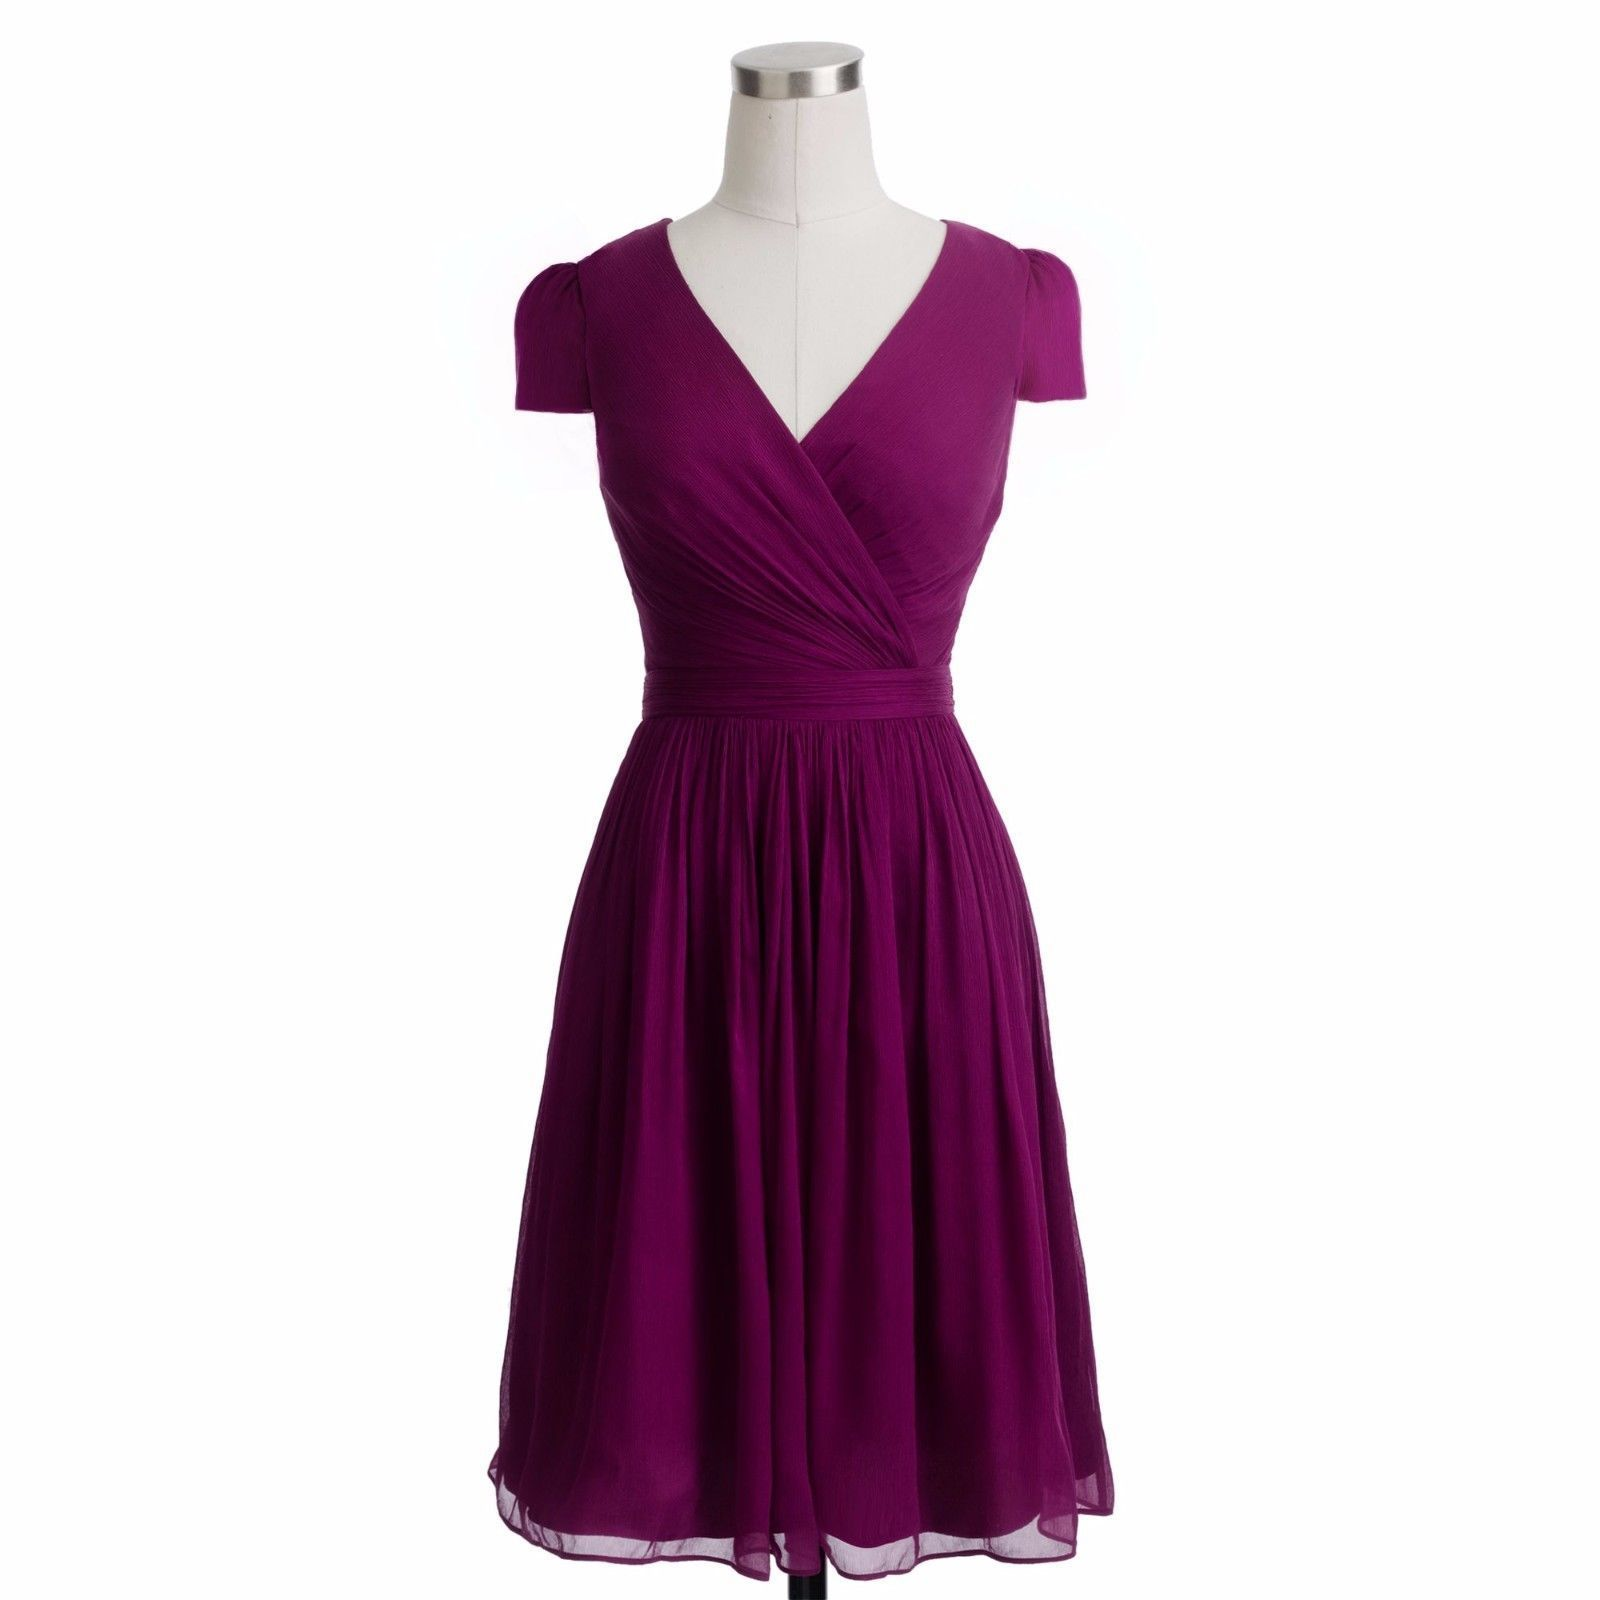 NEW $265 Size 10 J.Crew MIRABELLE Silk Chiffon Cocktail Dress in ...